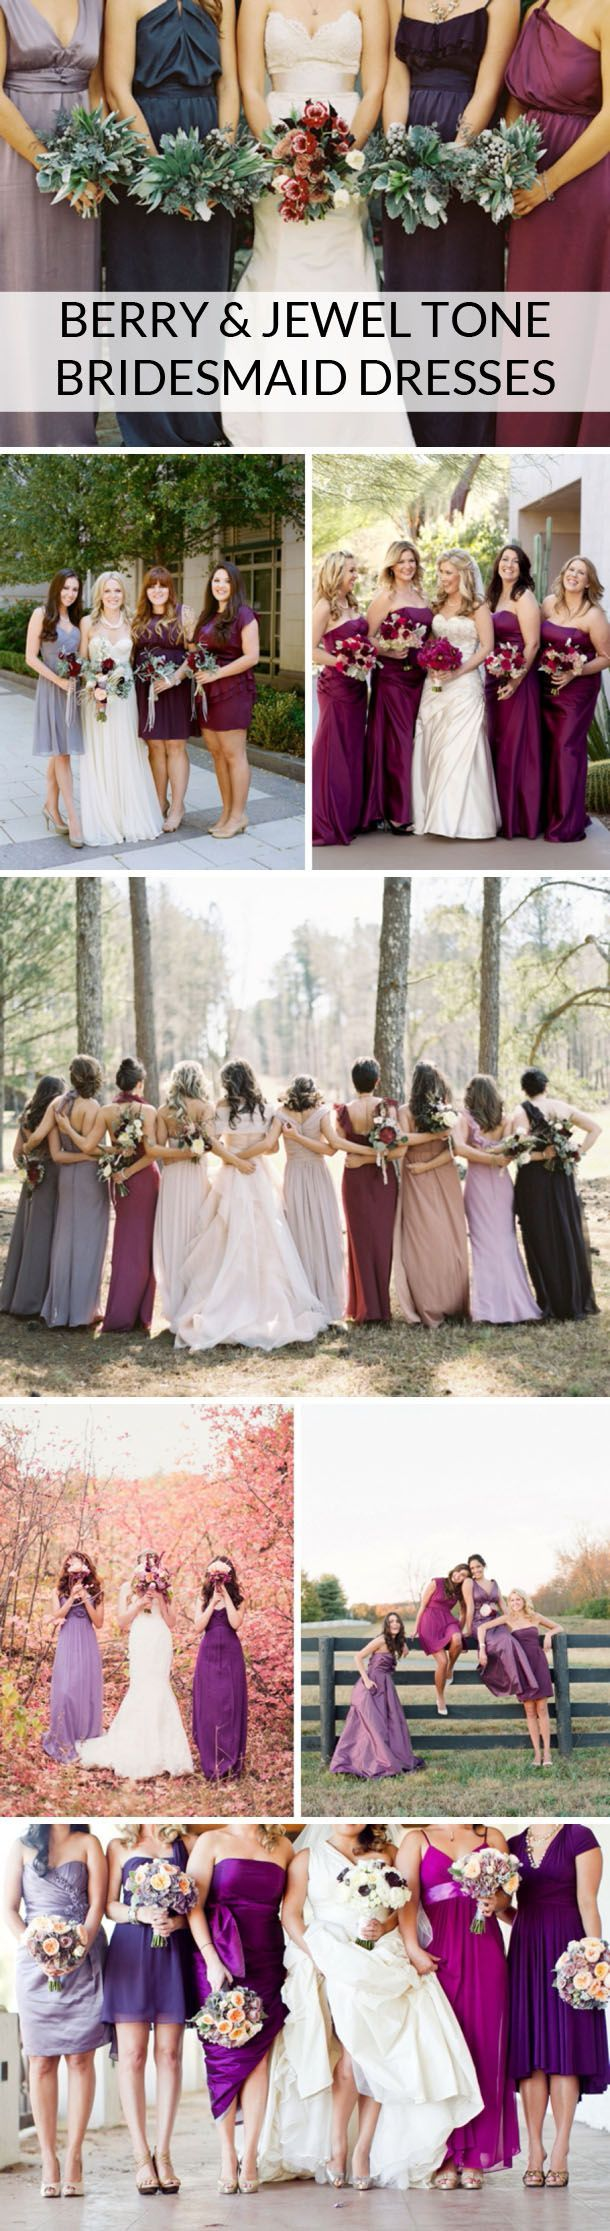 Beautiful berry & jewel tone bridesmaid dress inspiration | SouthBound Bride | http://www.southboundbride.com/berry-jewel-tone-bridesmaid-dresses | Image credits: Jill Thomas // Austin Gros // Laura Segall // Eric Kelley // Alixanne Loosle // Elizabeth Messina // The Collective